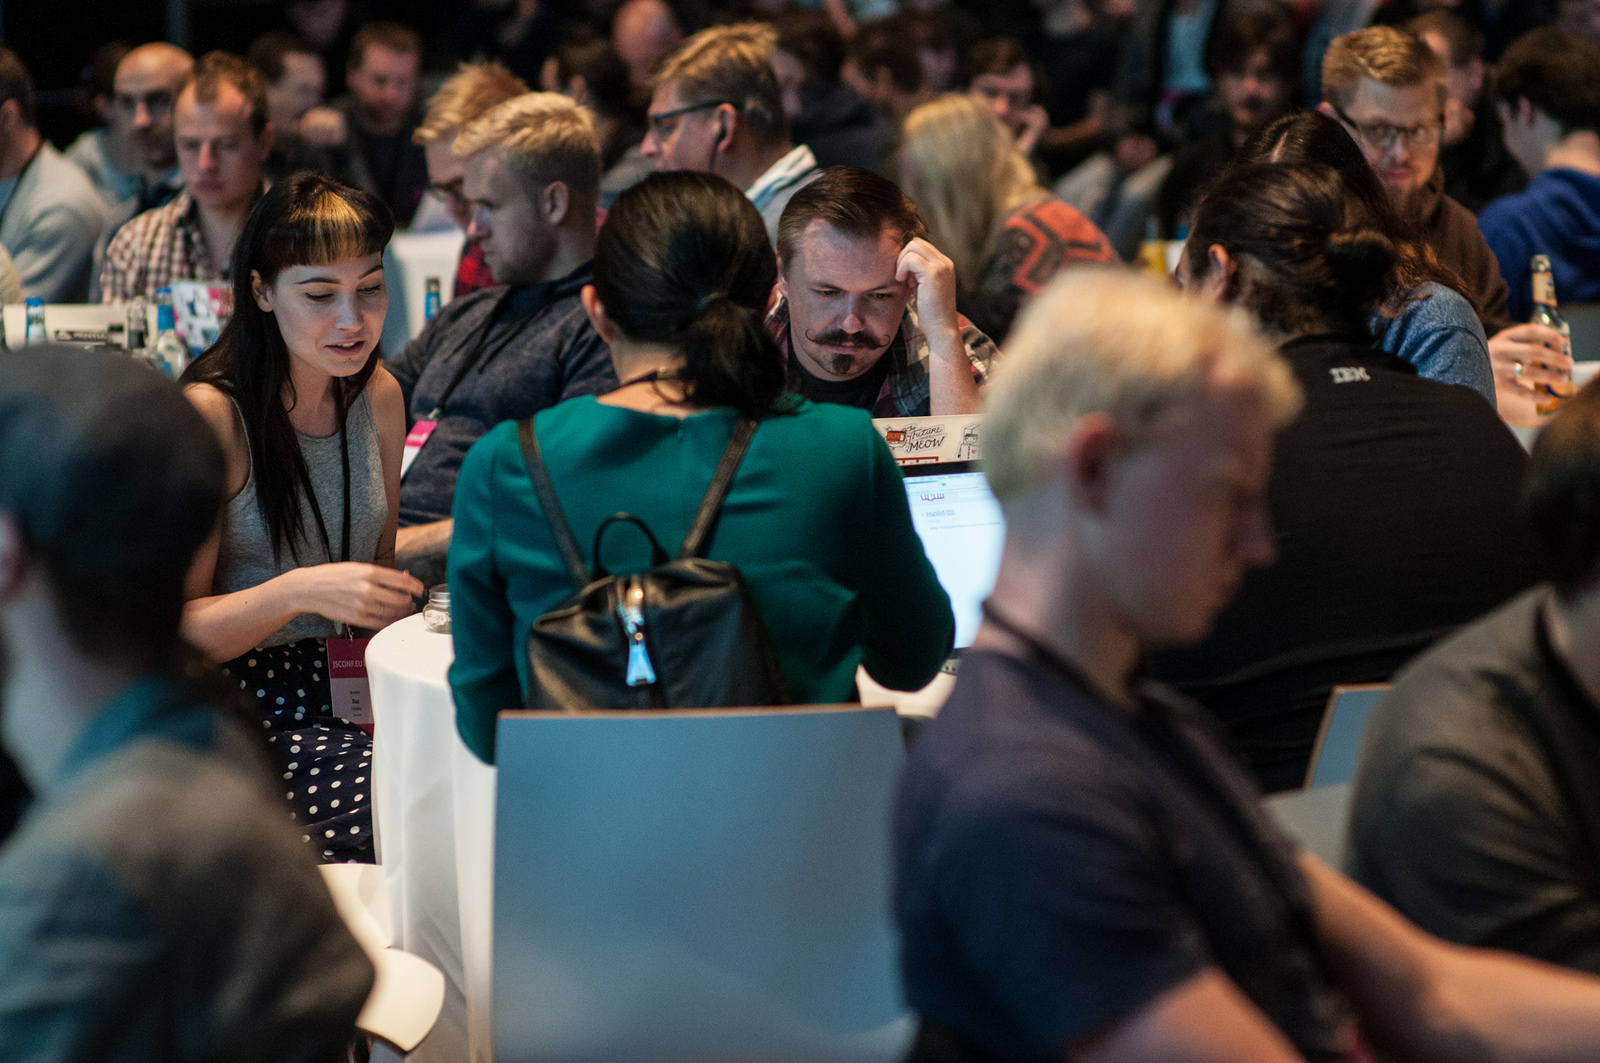 Upcoming Cloudflare events: Berlin May 5-7, Austin & Portland May 11